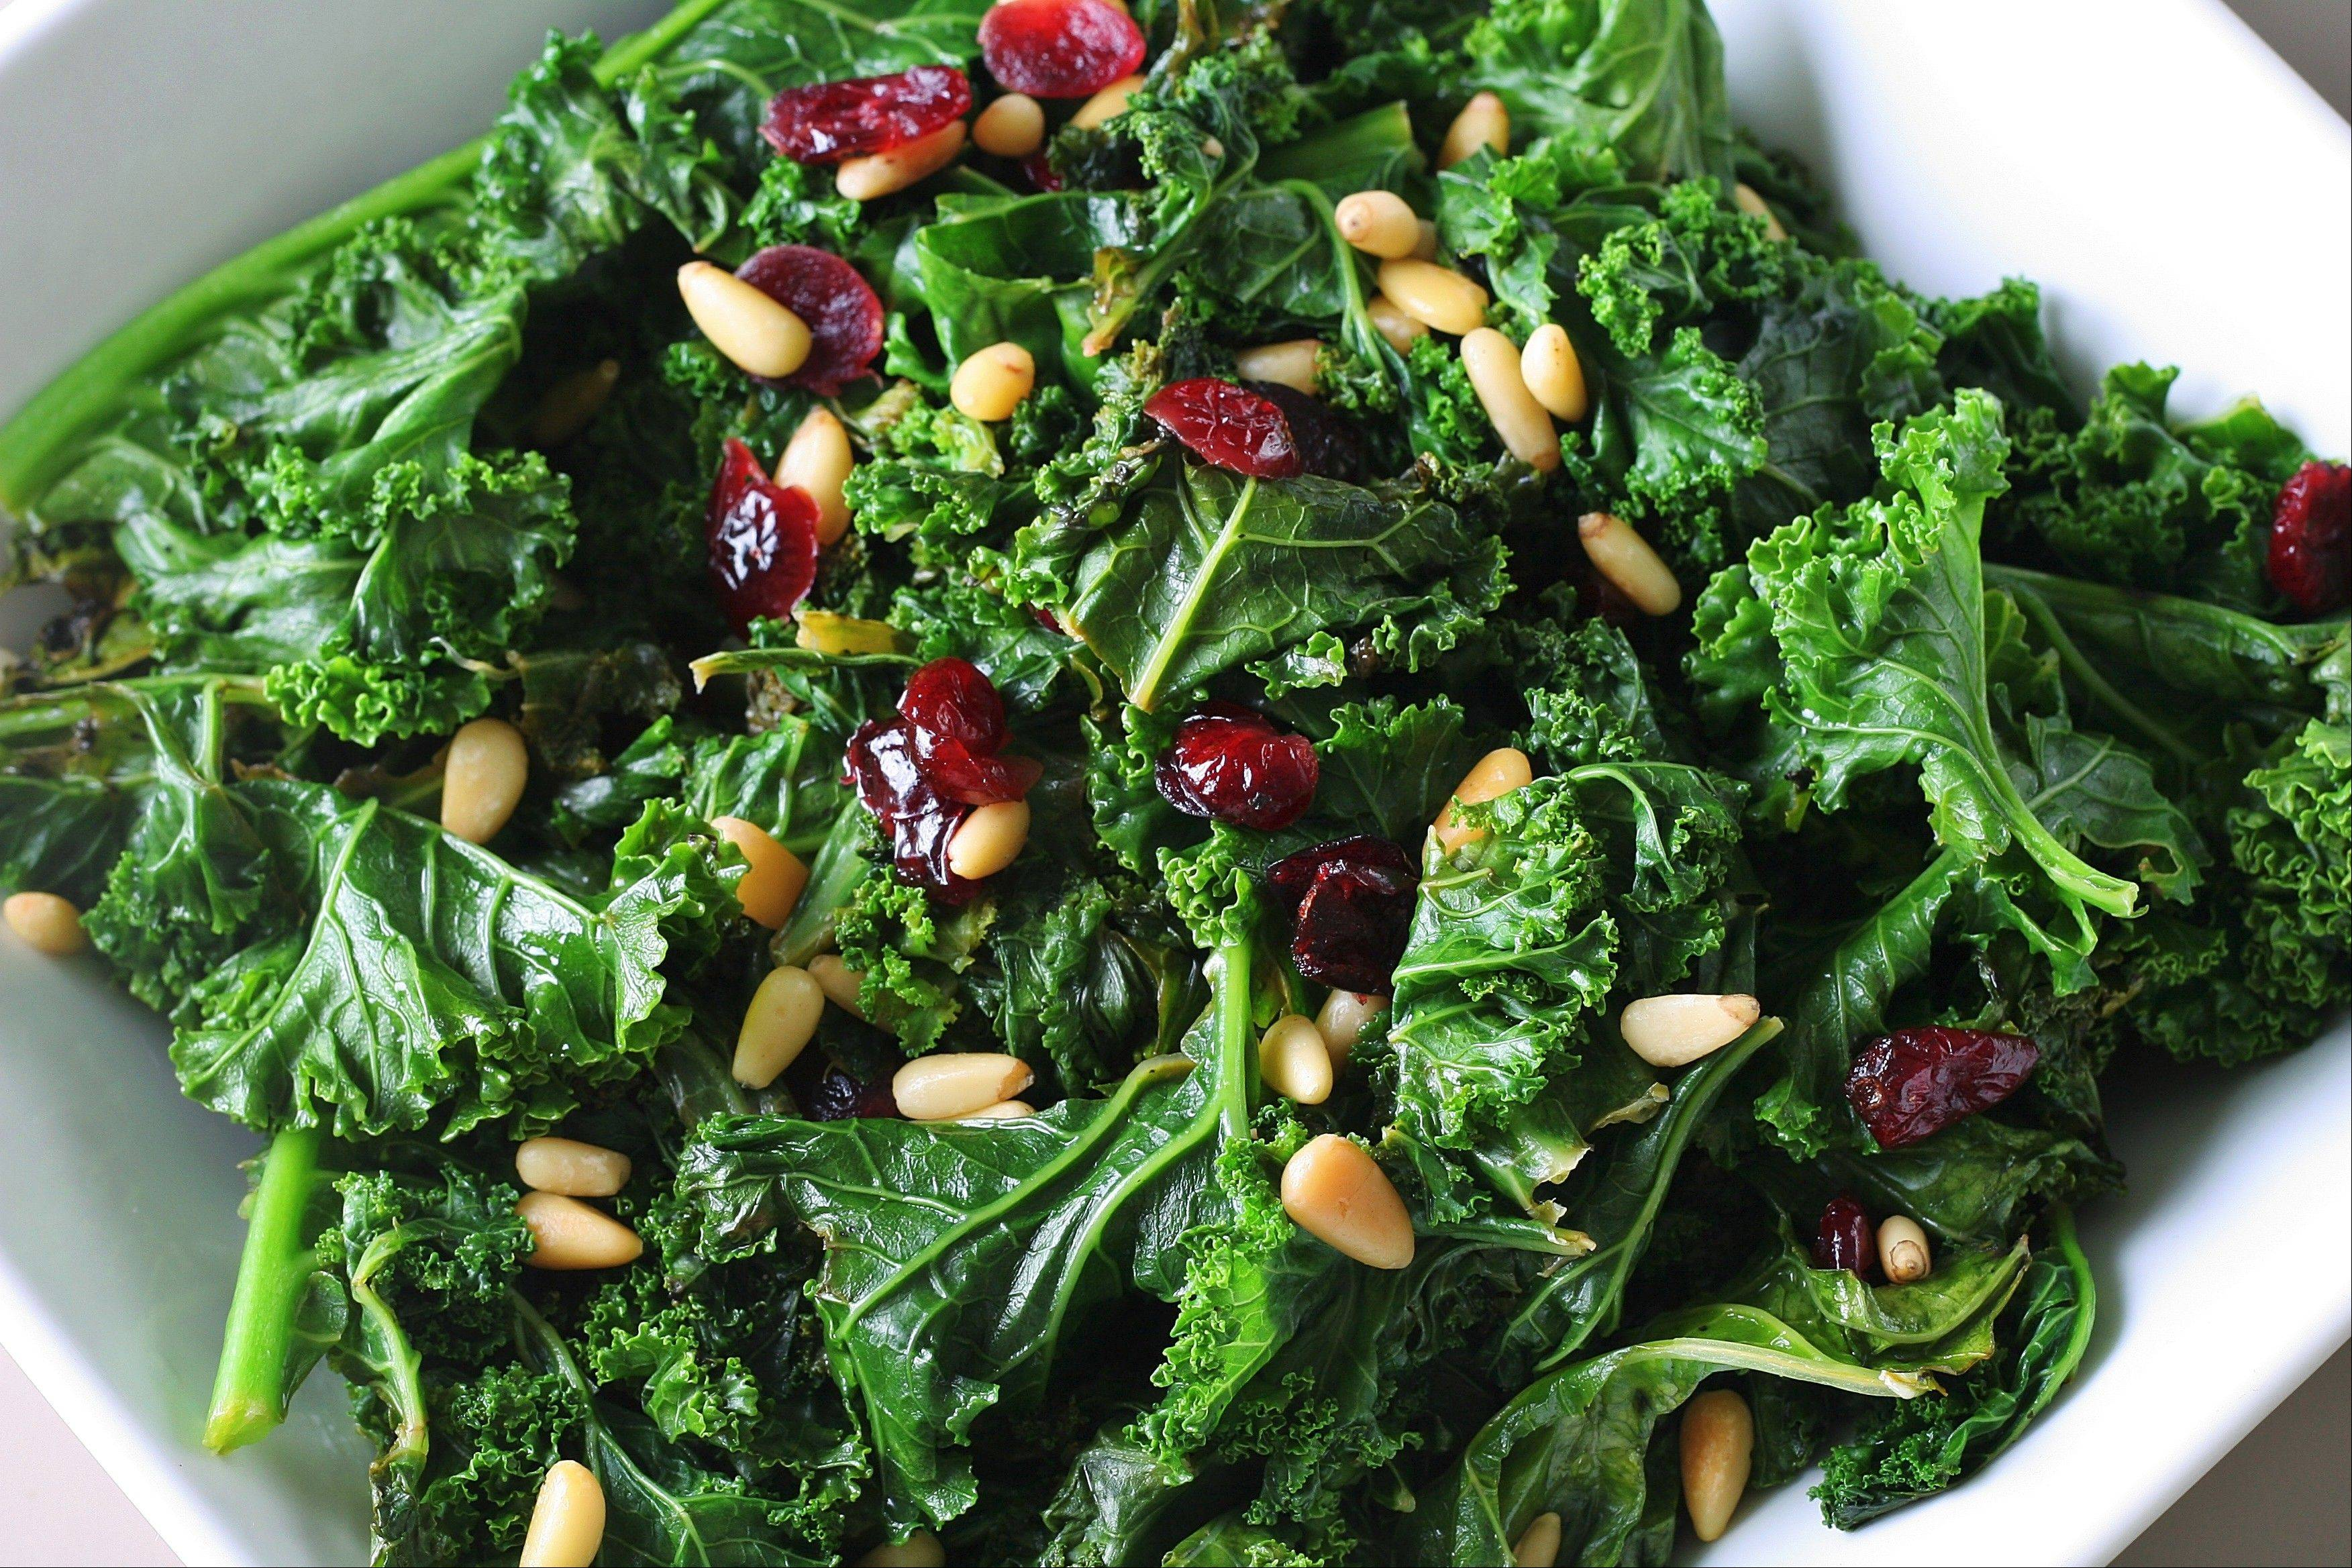 Sauteing kale with cranberries and pine nuts is a creative way to eat the super veggie.